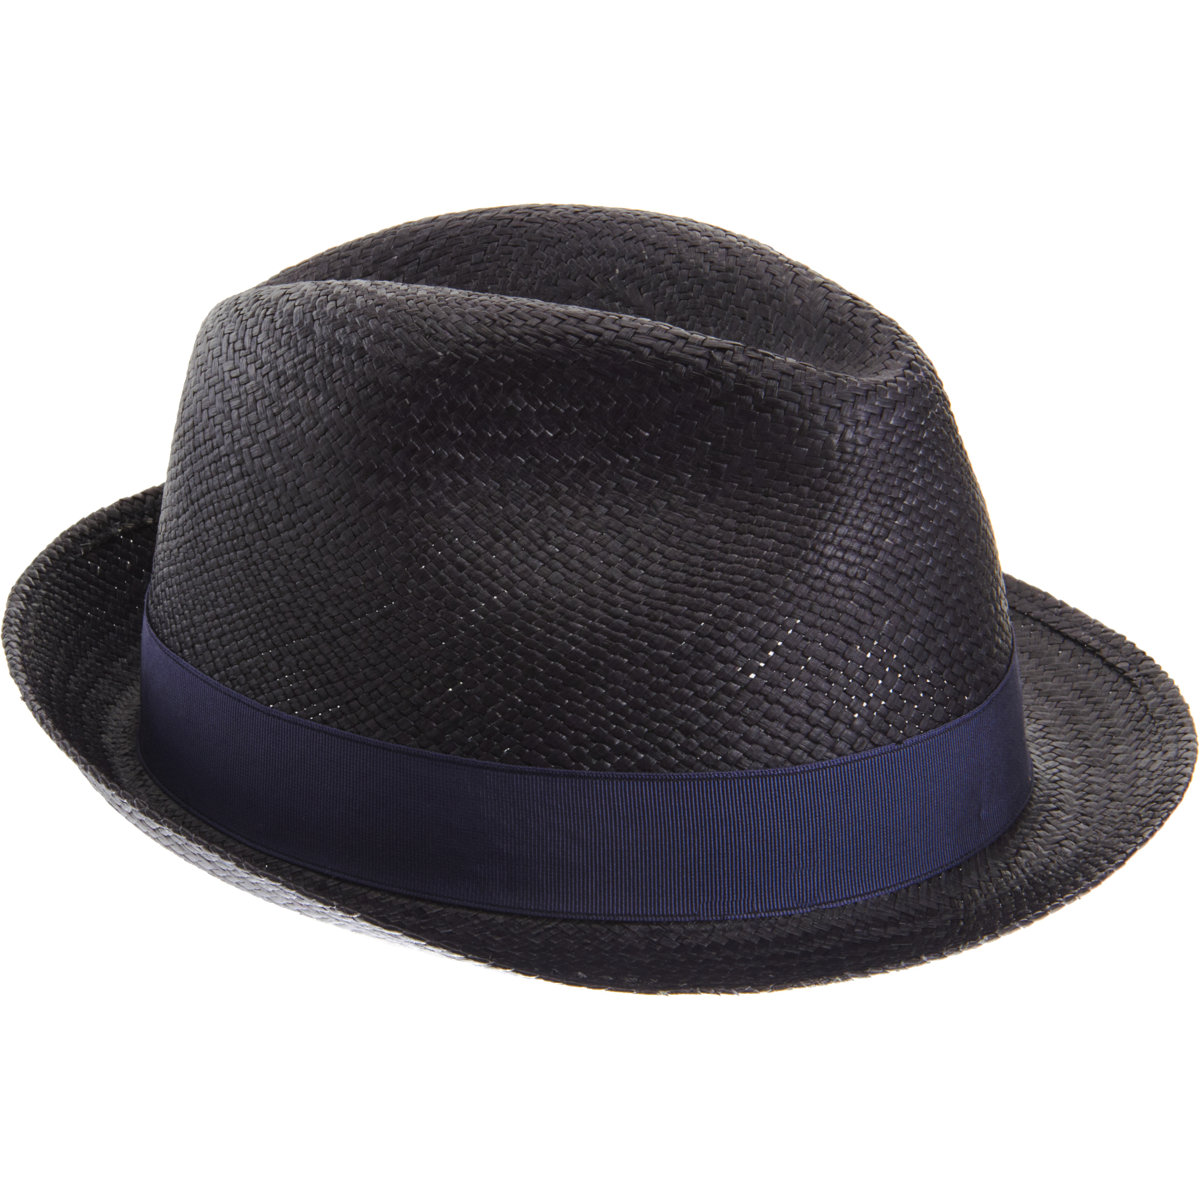 trilby online dating The brand founded by triple wimbledon champion fred perry in 1952 and adopted by generations of british subcultures ever since the laurel wreath is always worn as a.